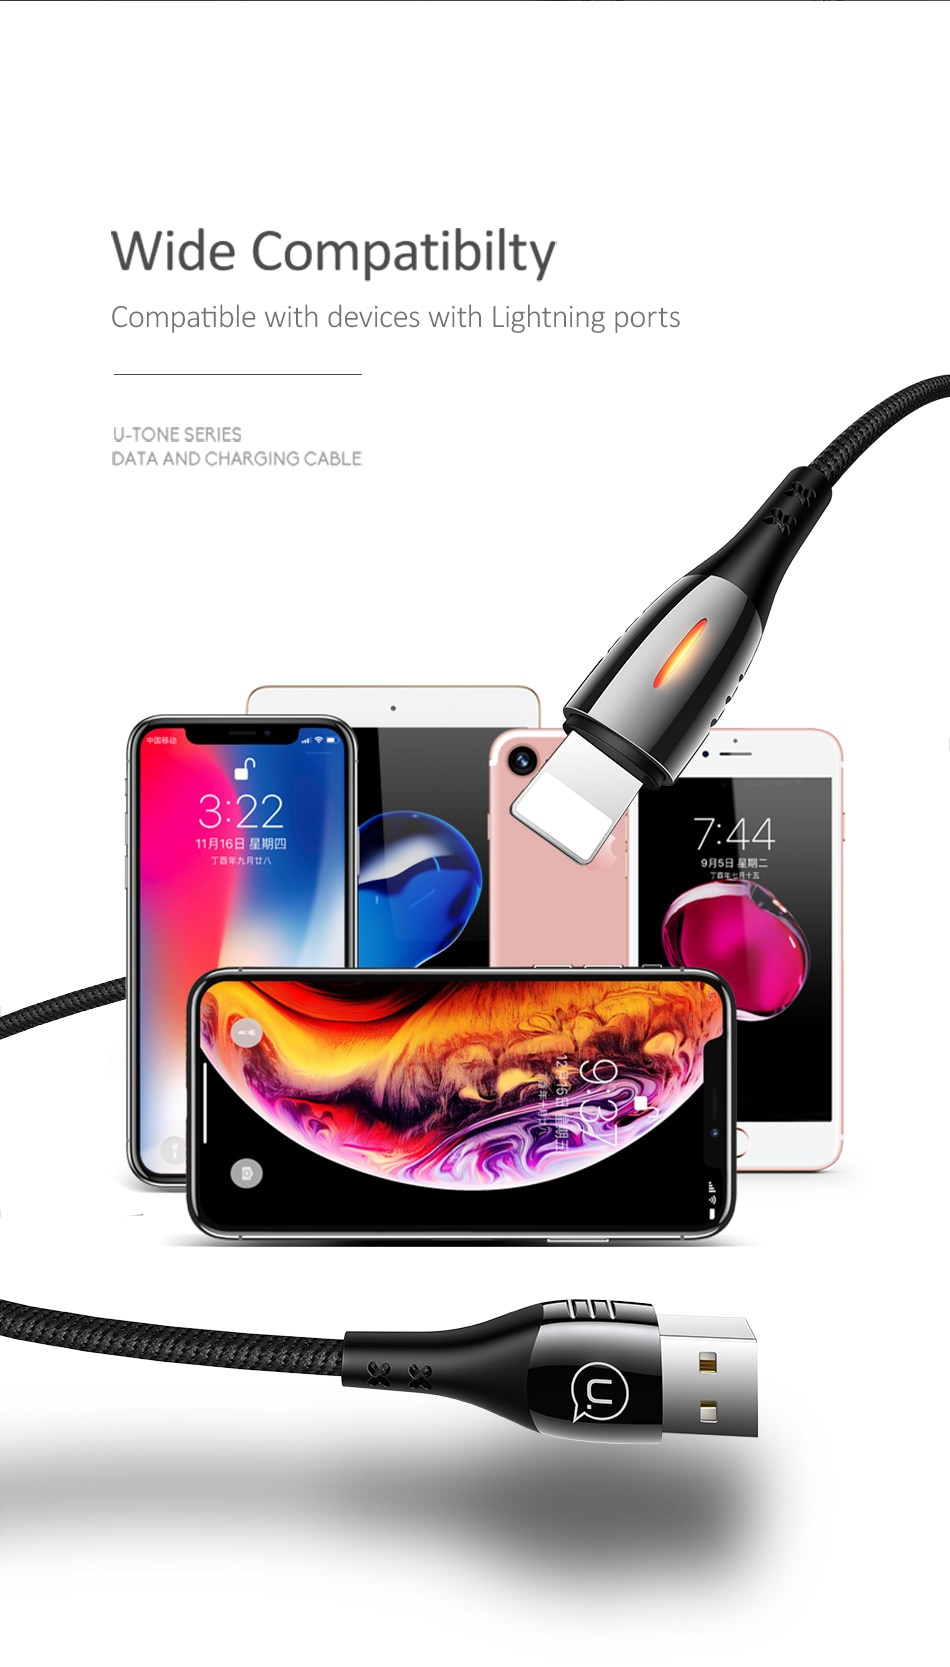 USAMS Smart Auto Disconnect Cable for iPhone Fast Charging Power Off USB Charging protection Cable for iPad iPhone X XS 8 7 6 6S